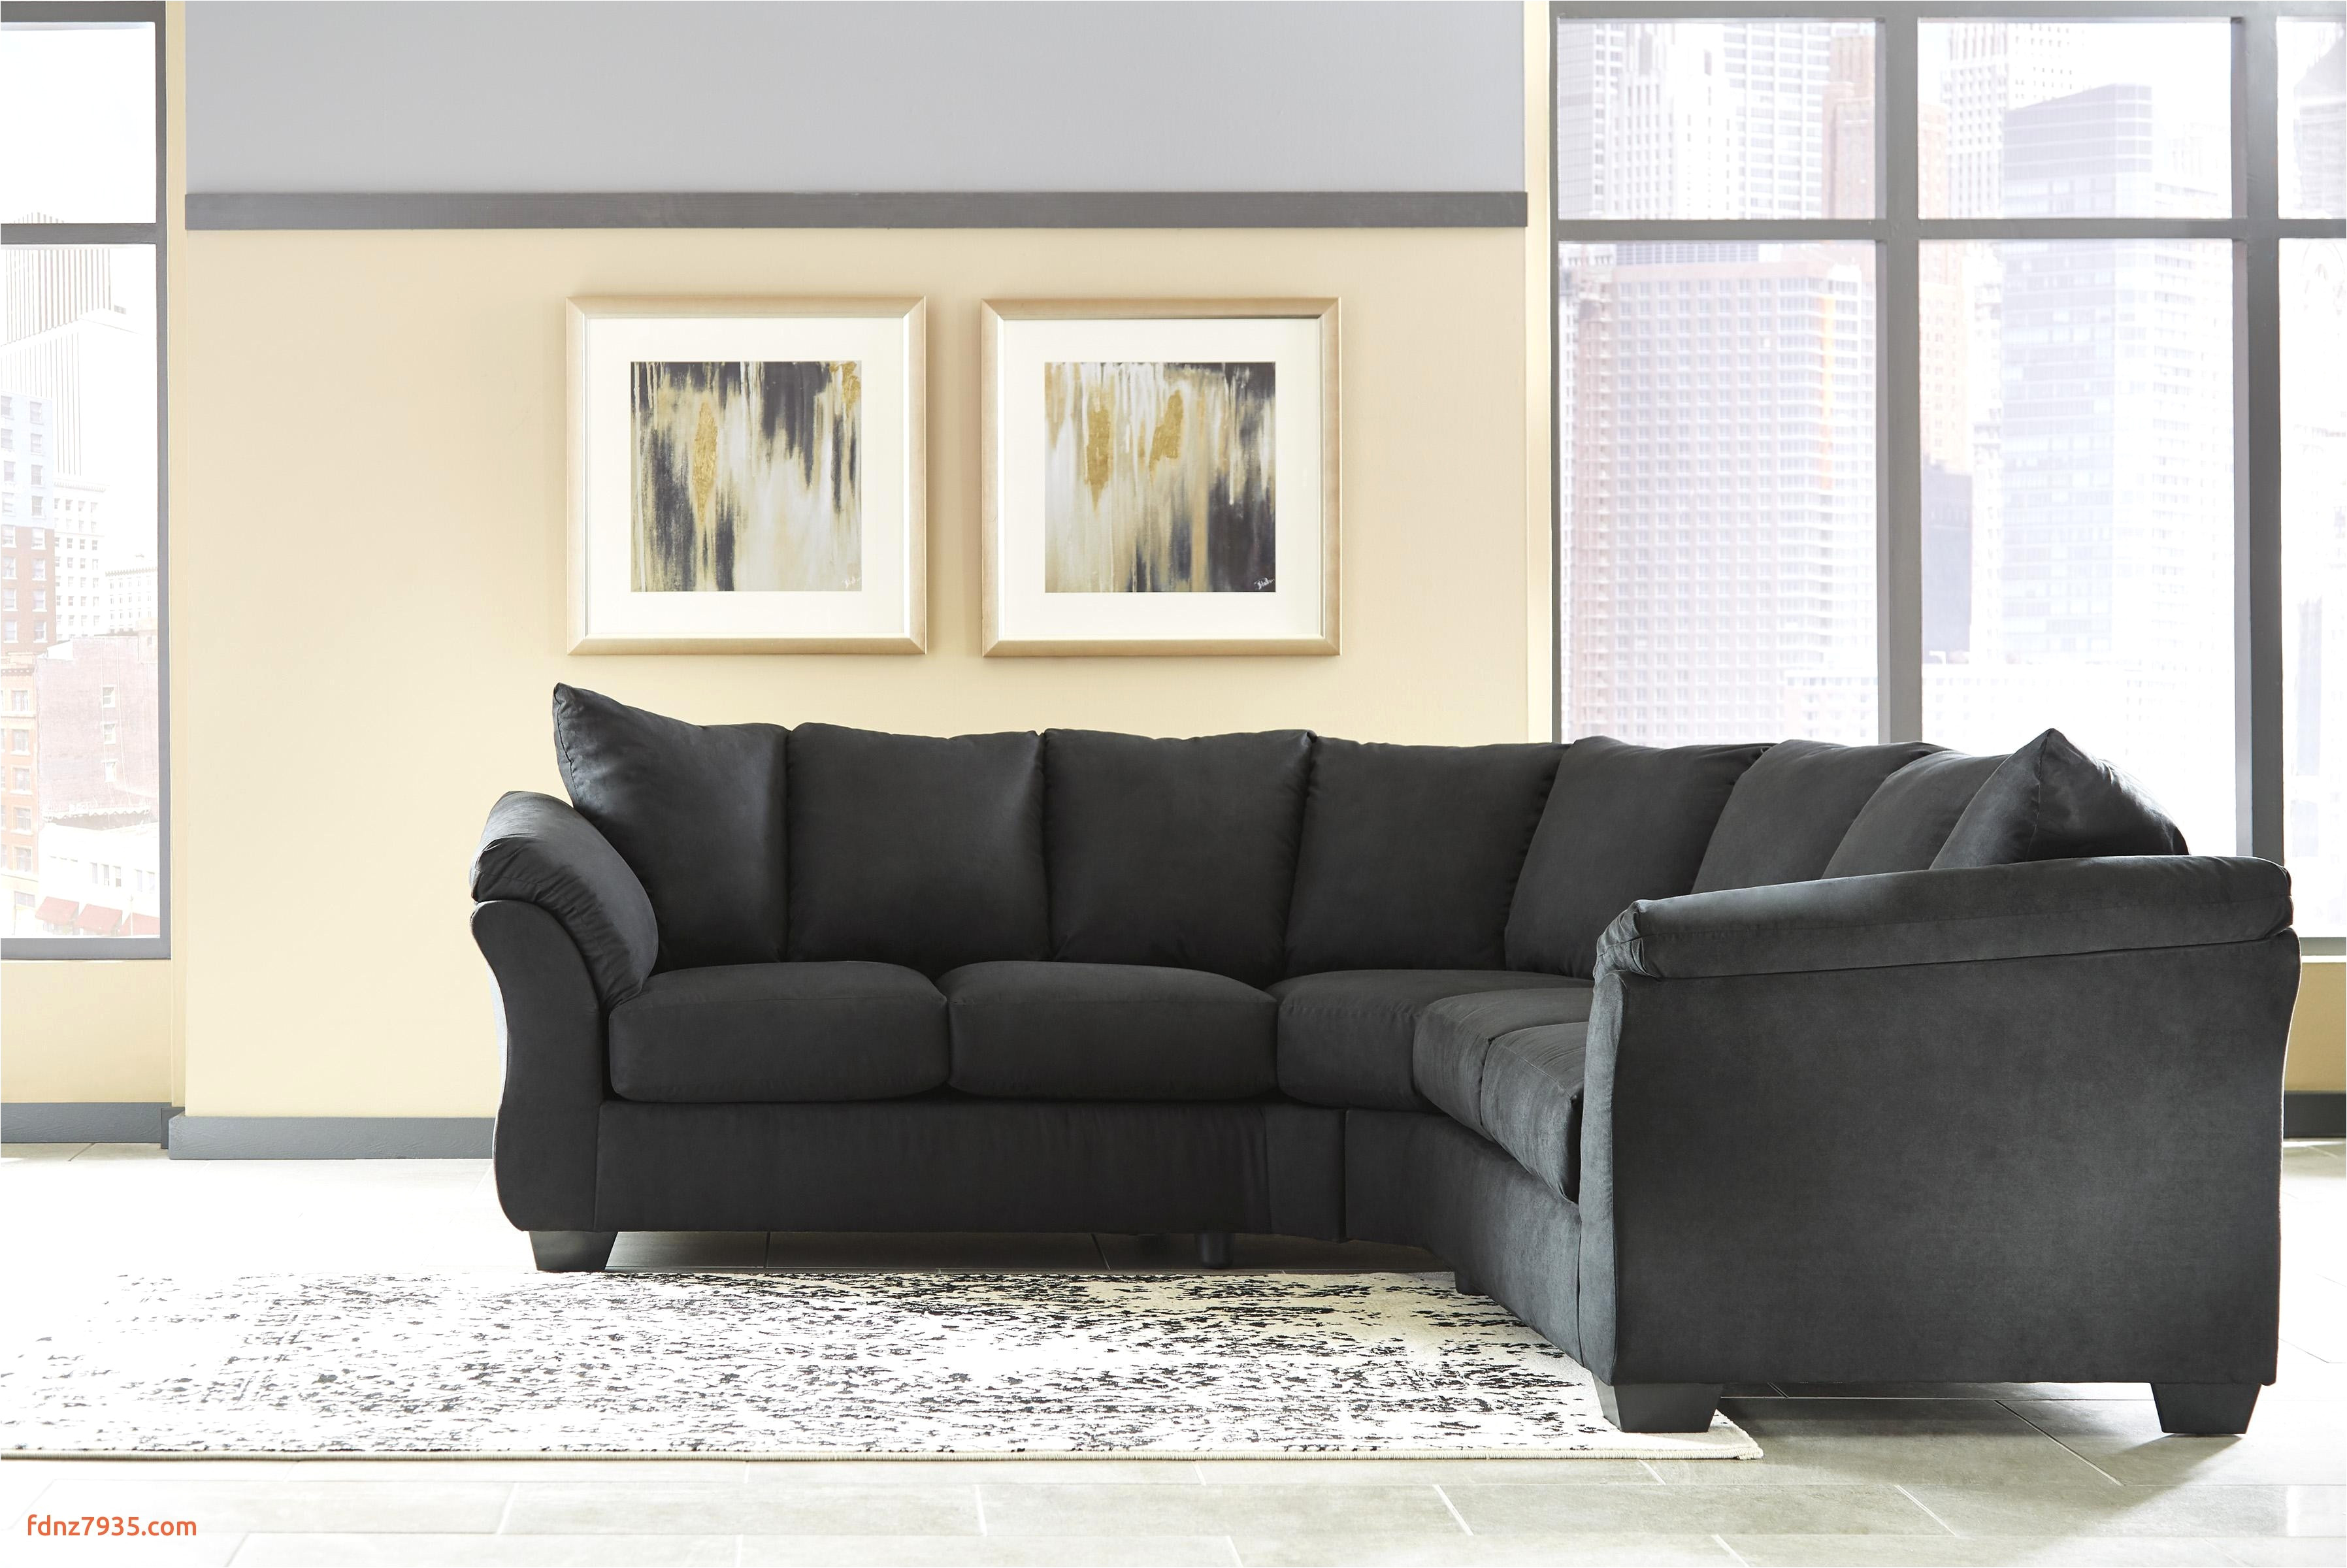 living room couches luxury living room ideas with sectional sofas luxury sectional couch 0d